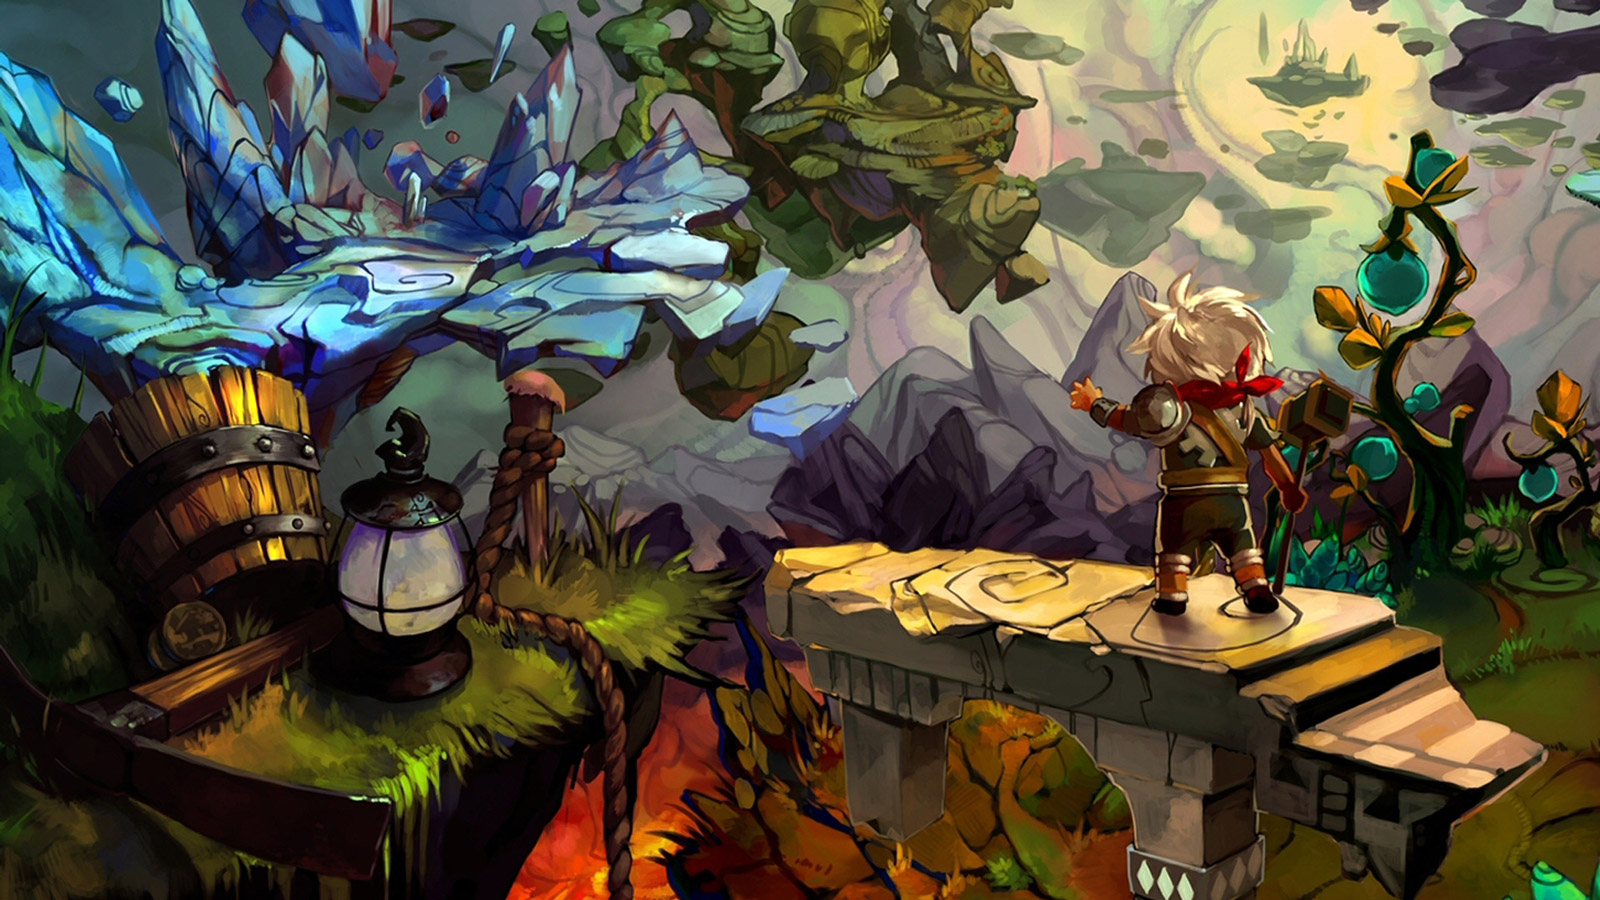 Bastion Wallpaper in 1600x900